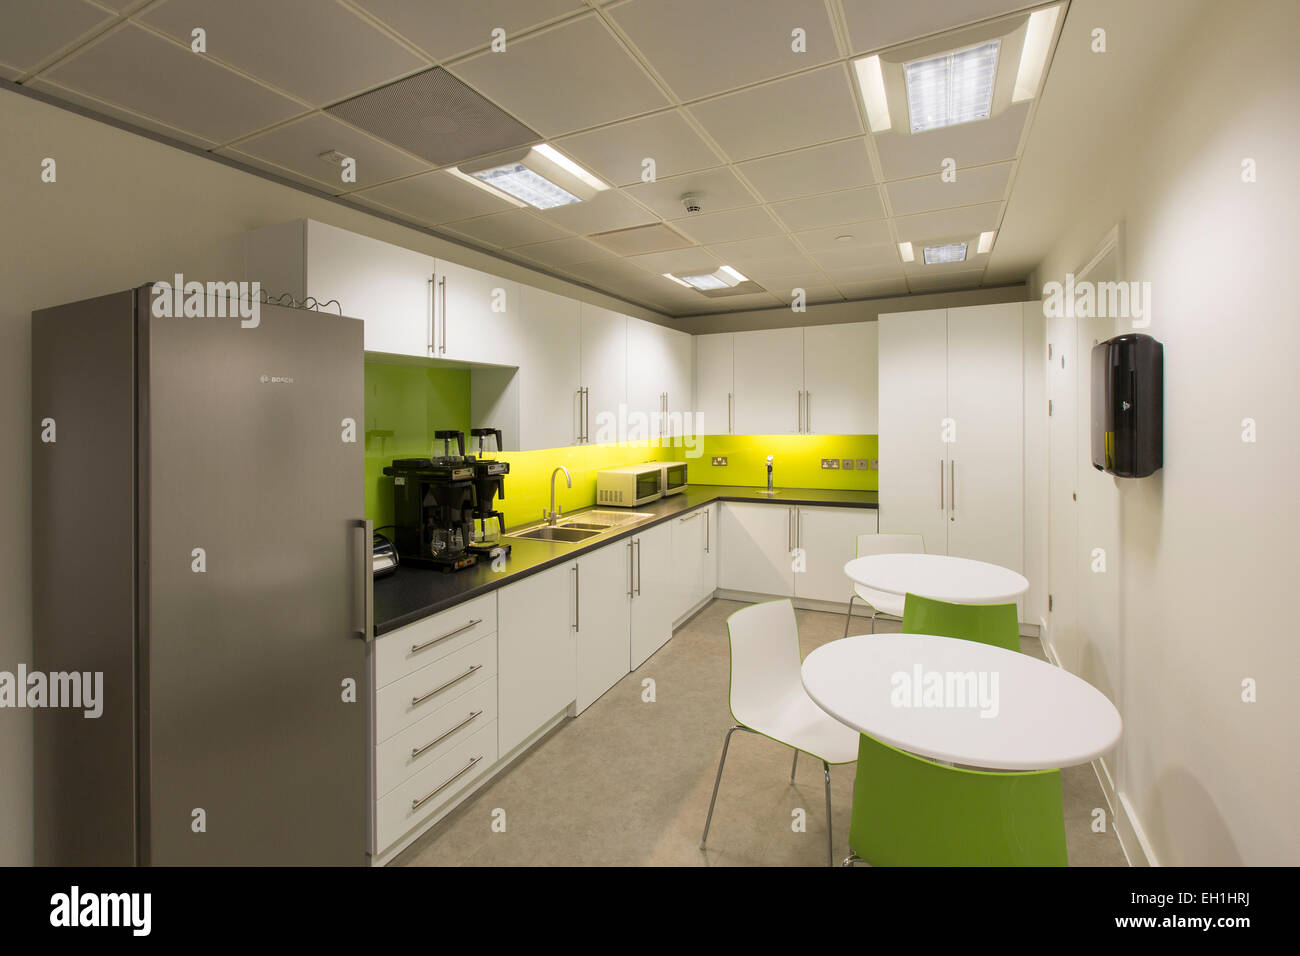 Modern office interior with kitchen facilities - Stock Image